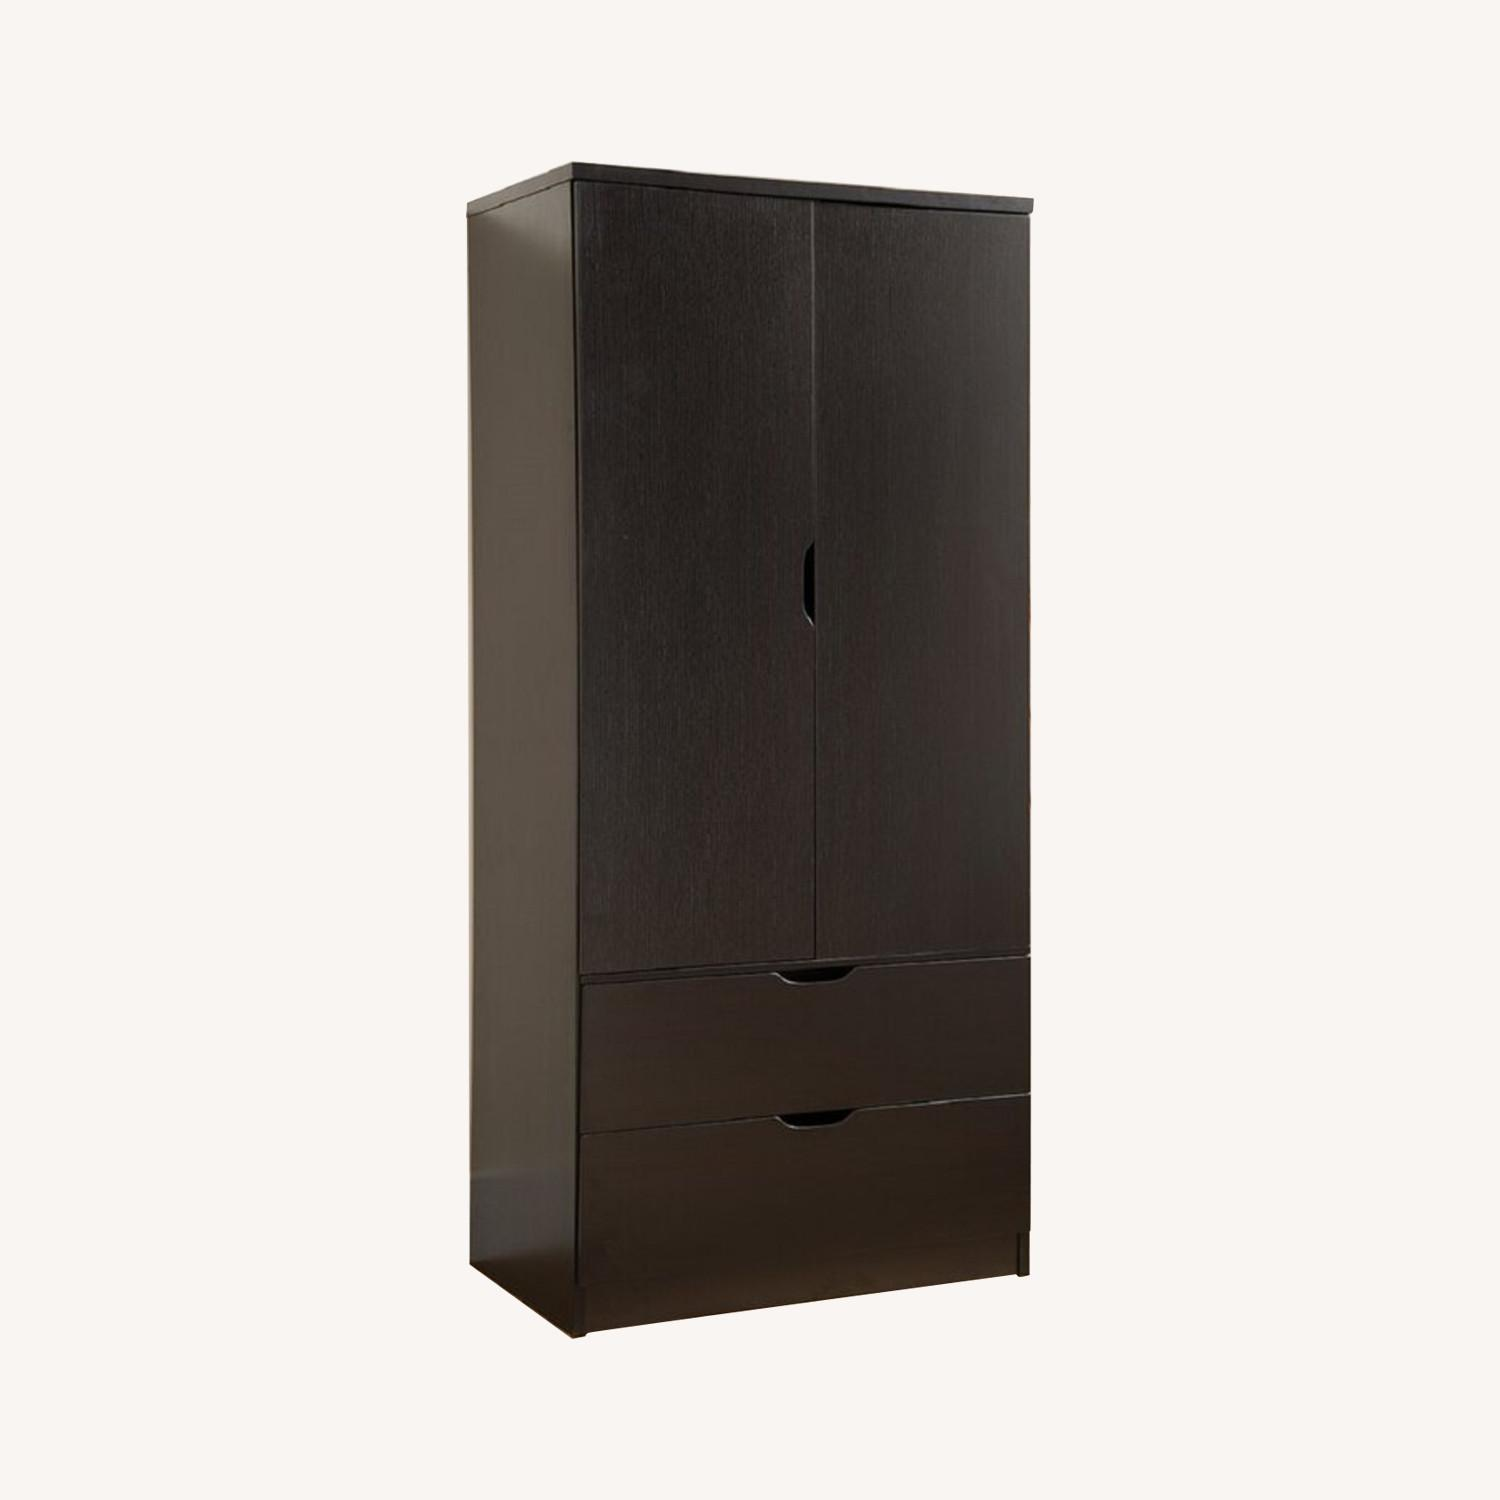 Wayfair Mahogany Laminate Wood Armoire - image-0